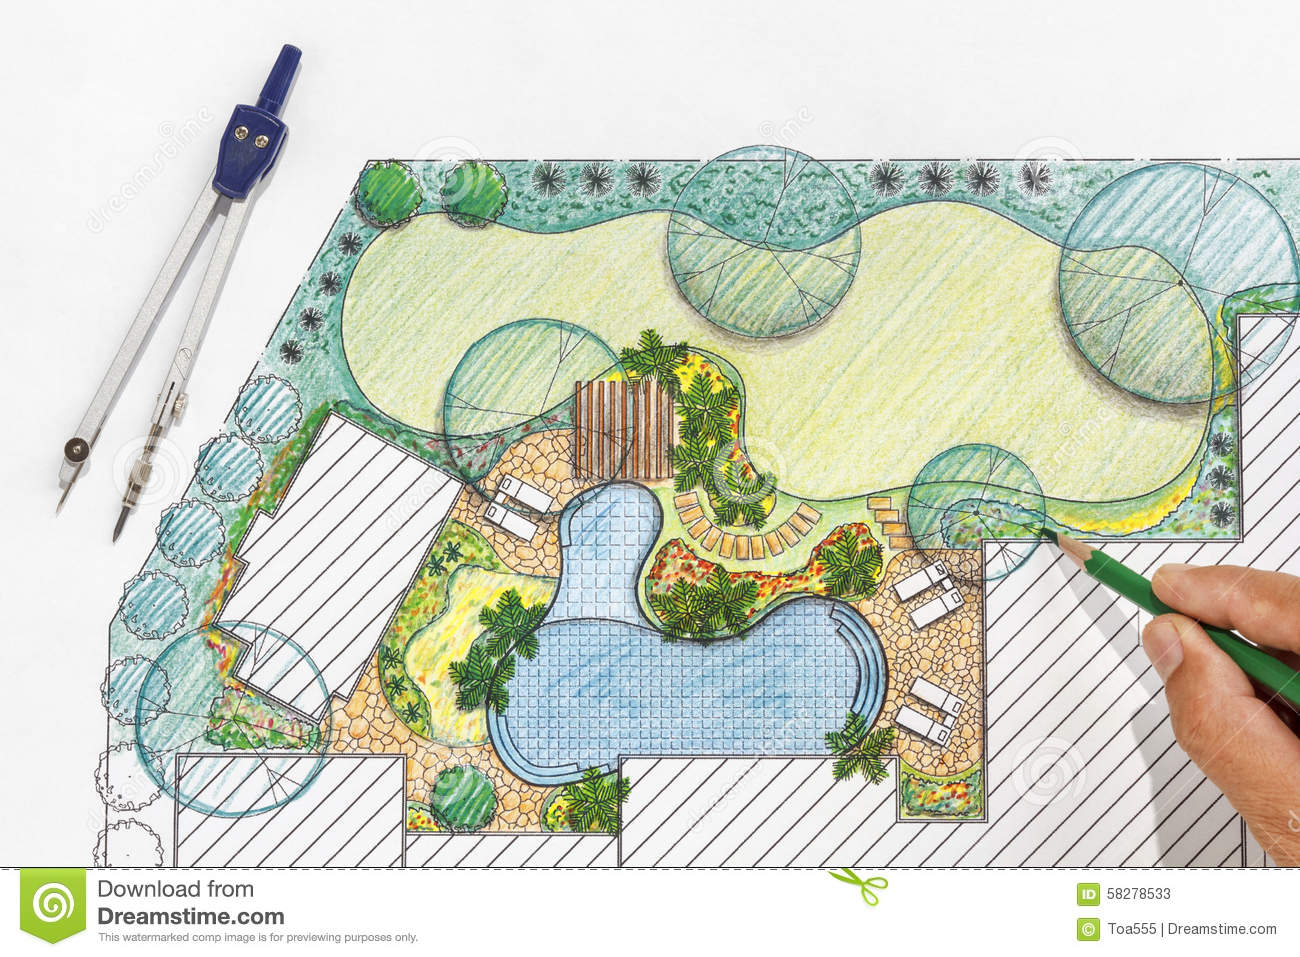 Garden Design Garden Design with Landscaping Design Plans